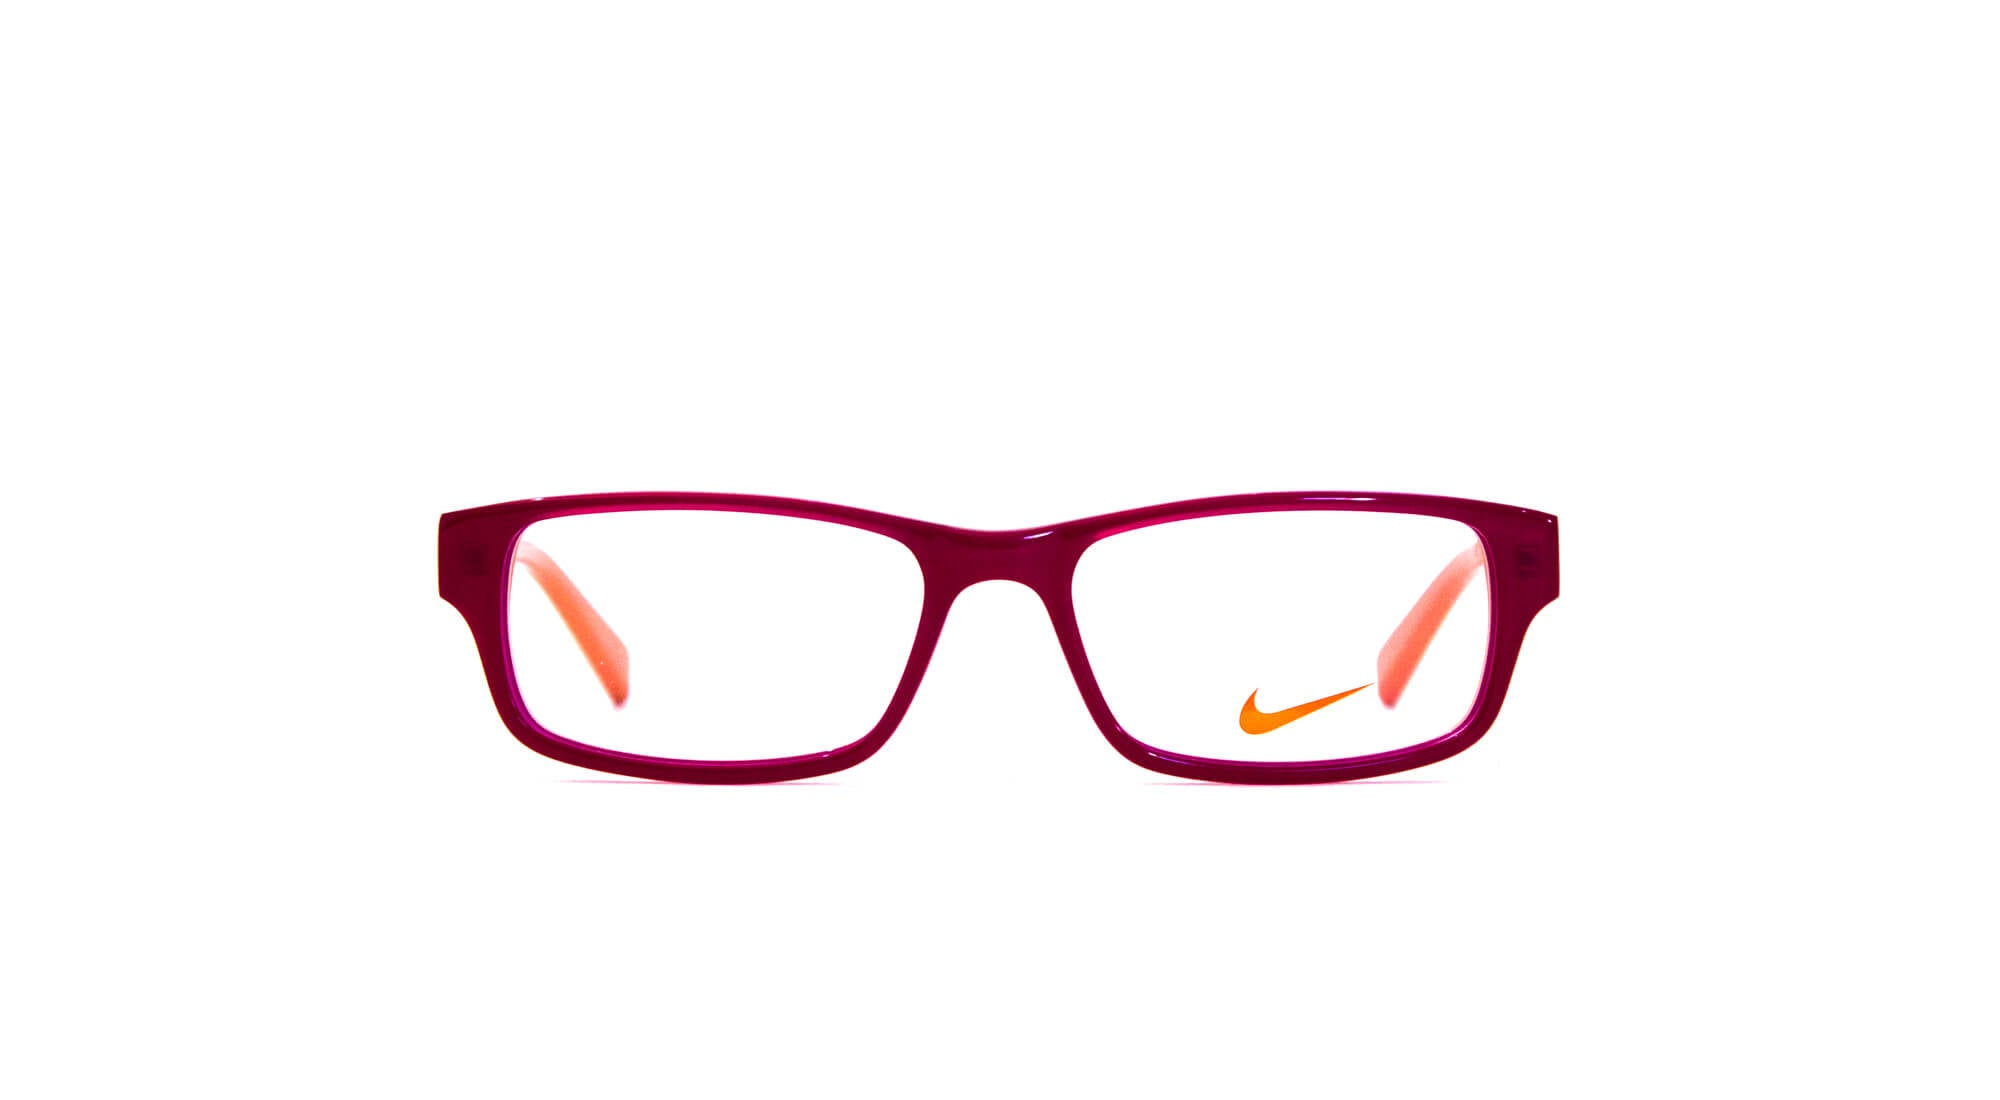 Nike Eyeglasses 5528 605 Rx-ABLE